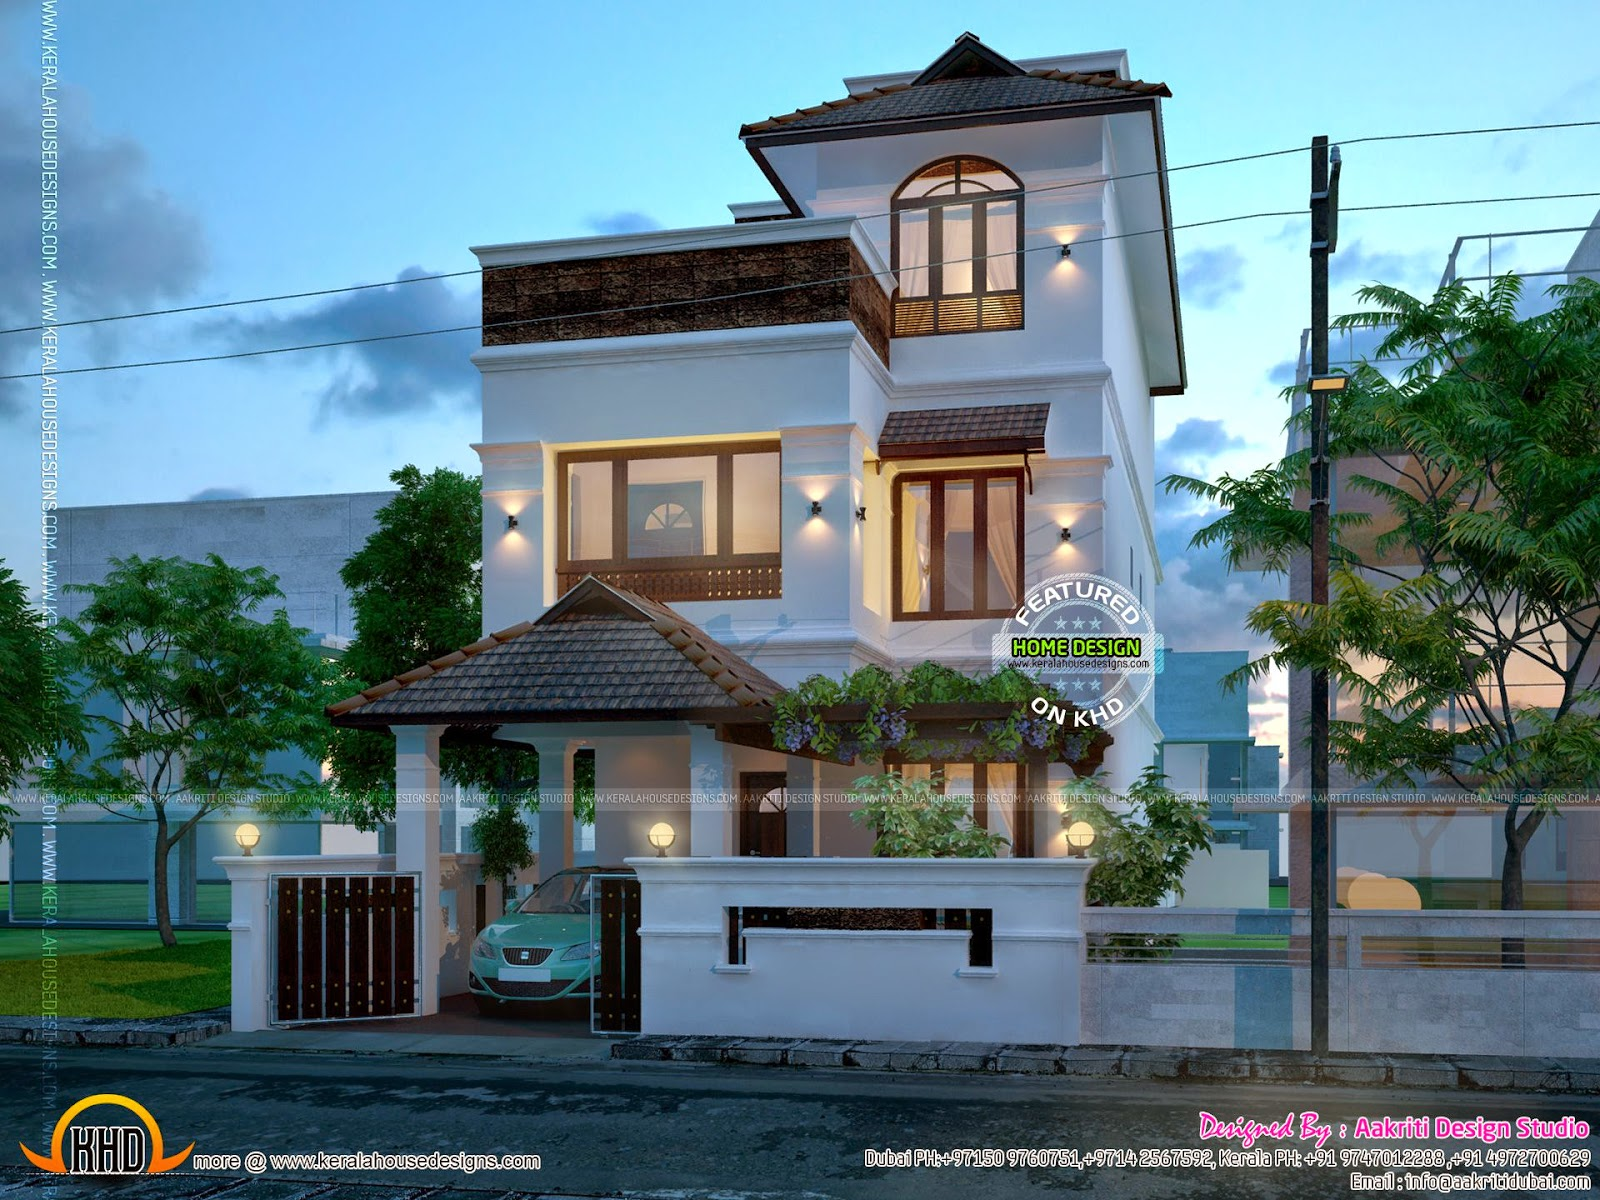 New house design Kerala home design and floor plans   Home Sweet Home New house design Kerala home design and floor plans